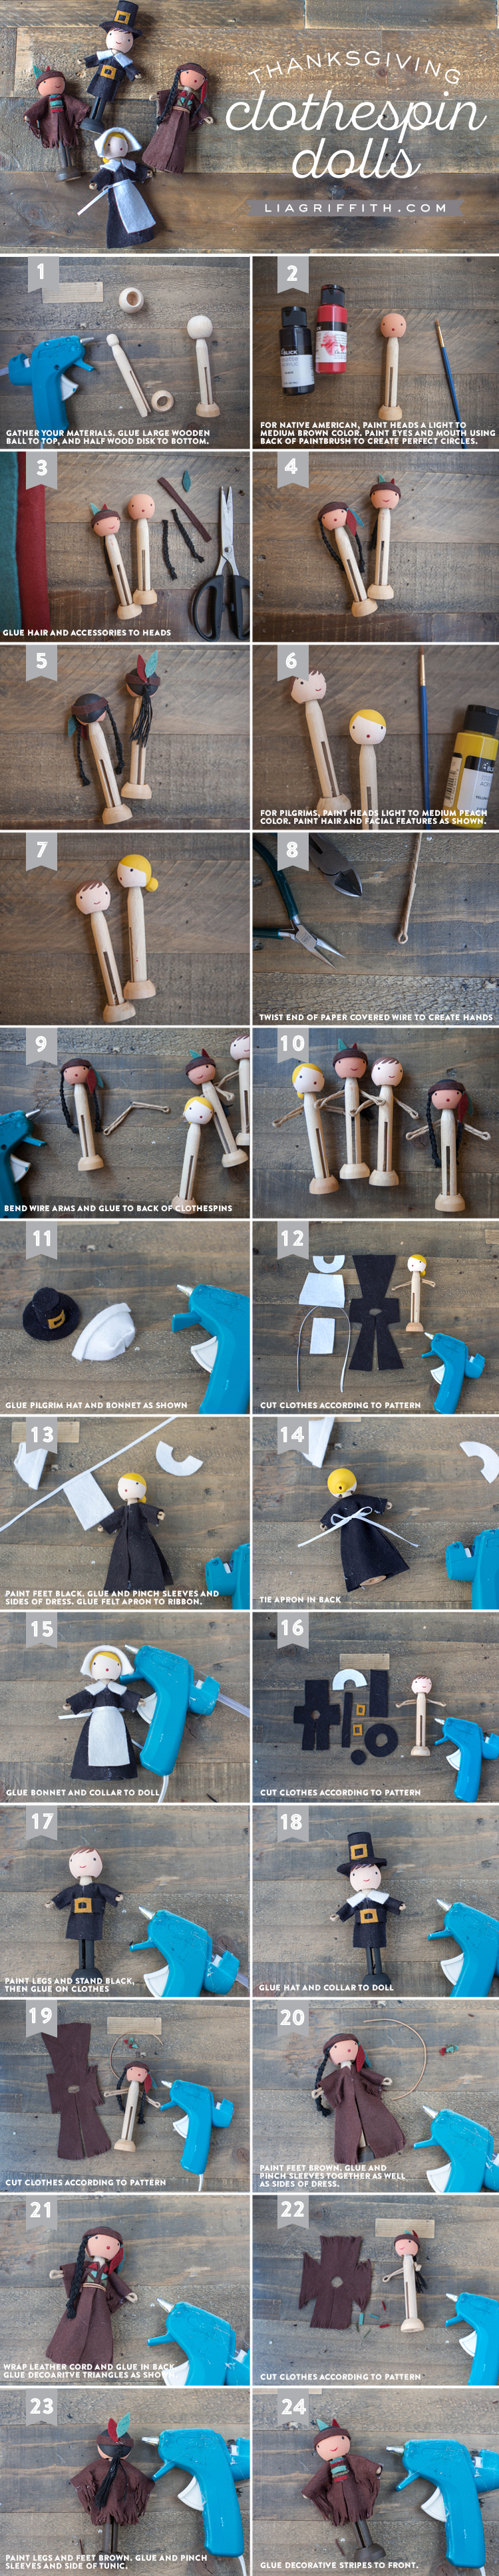 Clothespin_Thanksgiving_Dolls_Tutorial